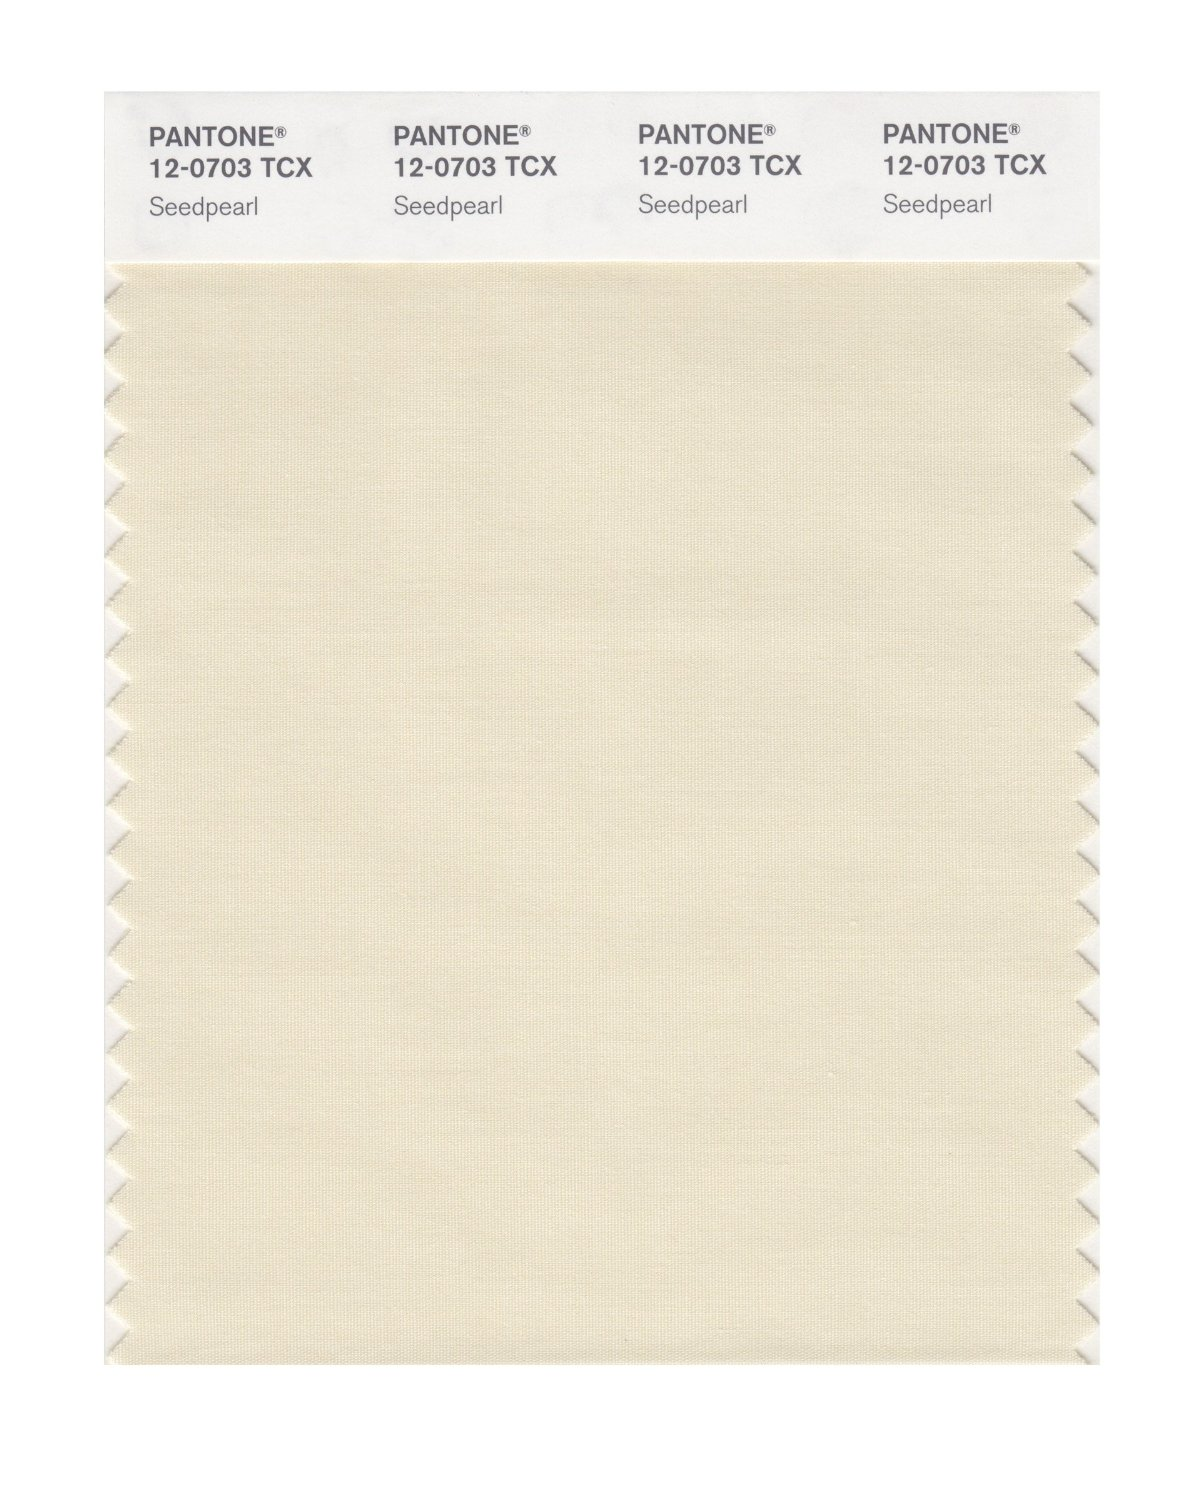 Pantone Smart Swatch 12-0703 Seedpearl